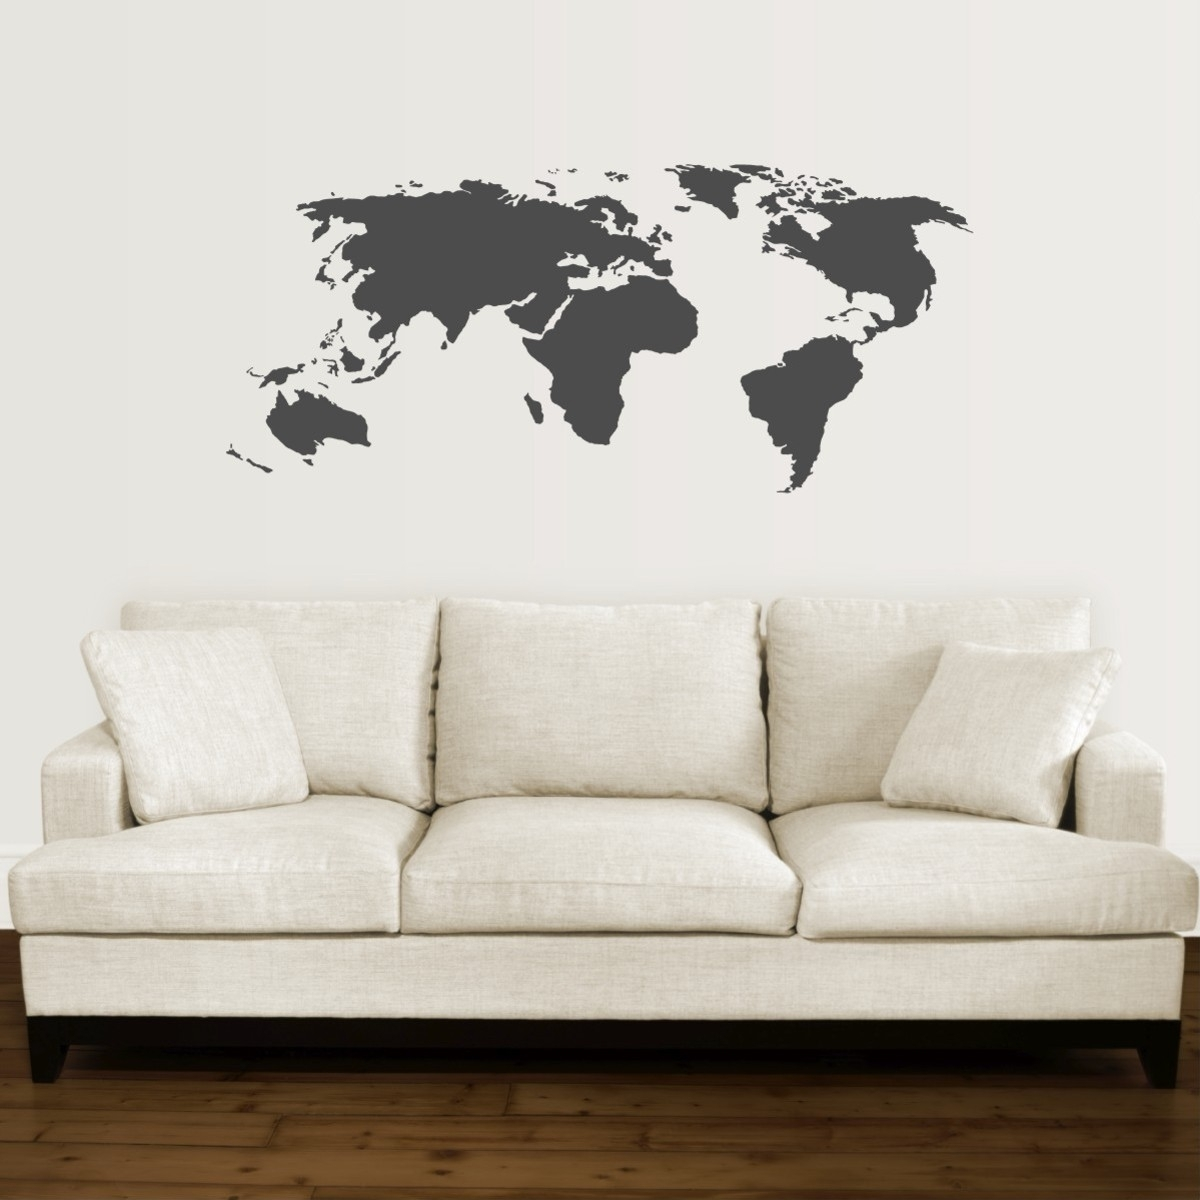 Cool Wall Art For Most Recently Released 17 Cool Ideas For World Map Wall Art – Live Diy Ideas (Gallery 14 of 15)